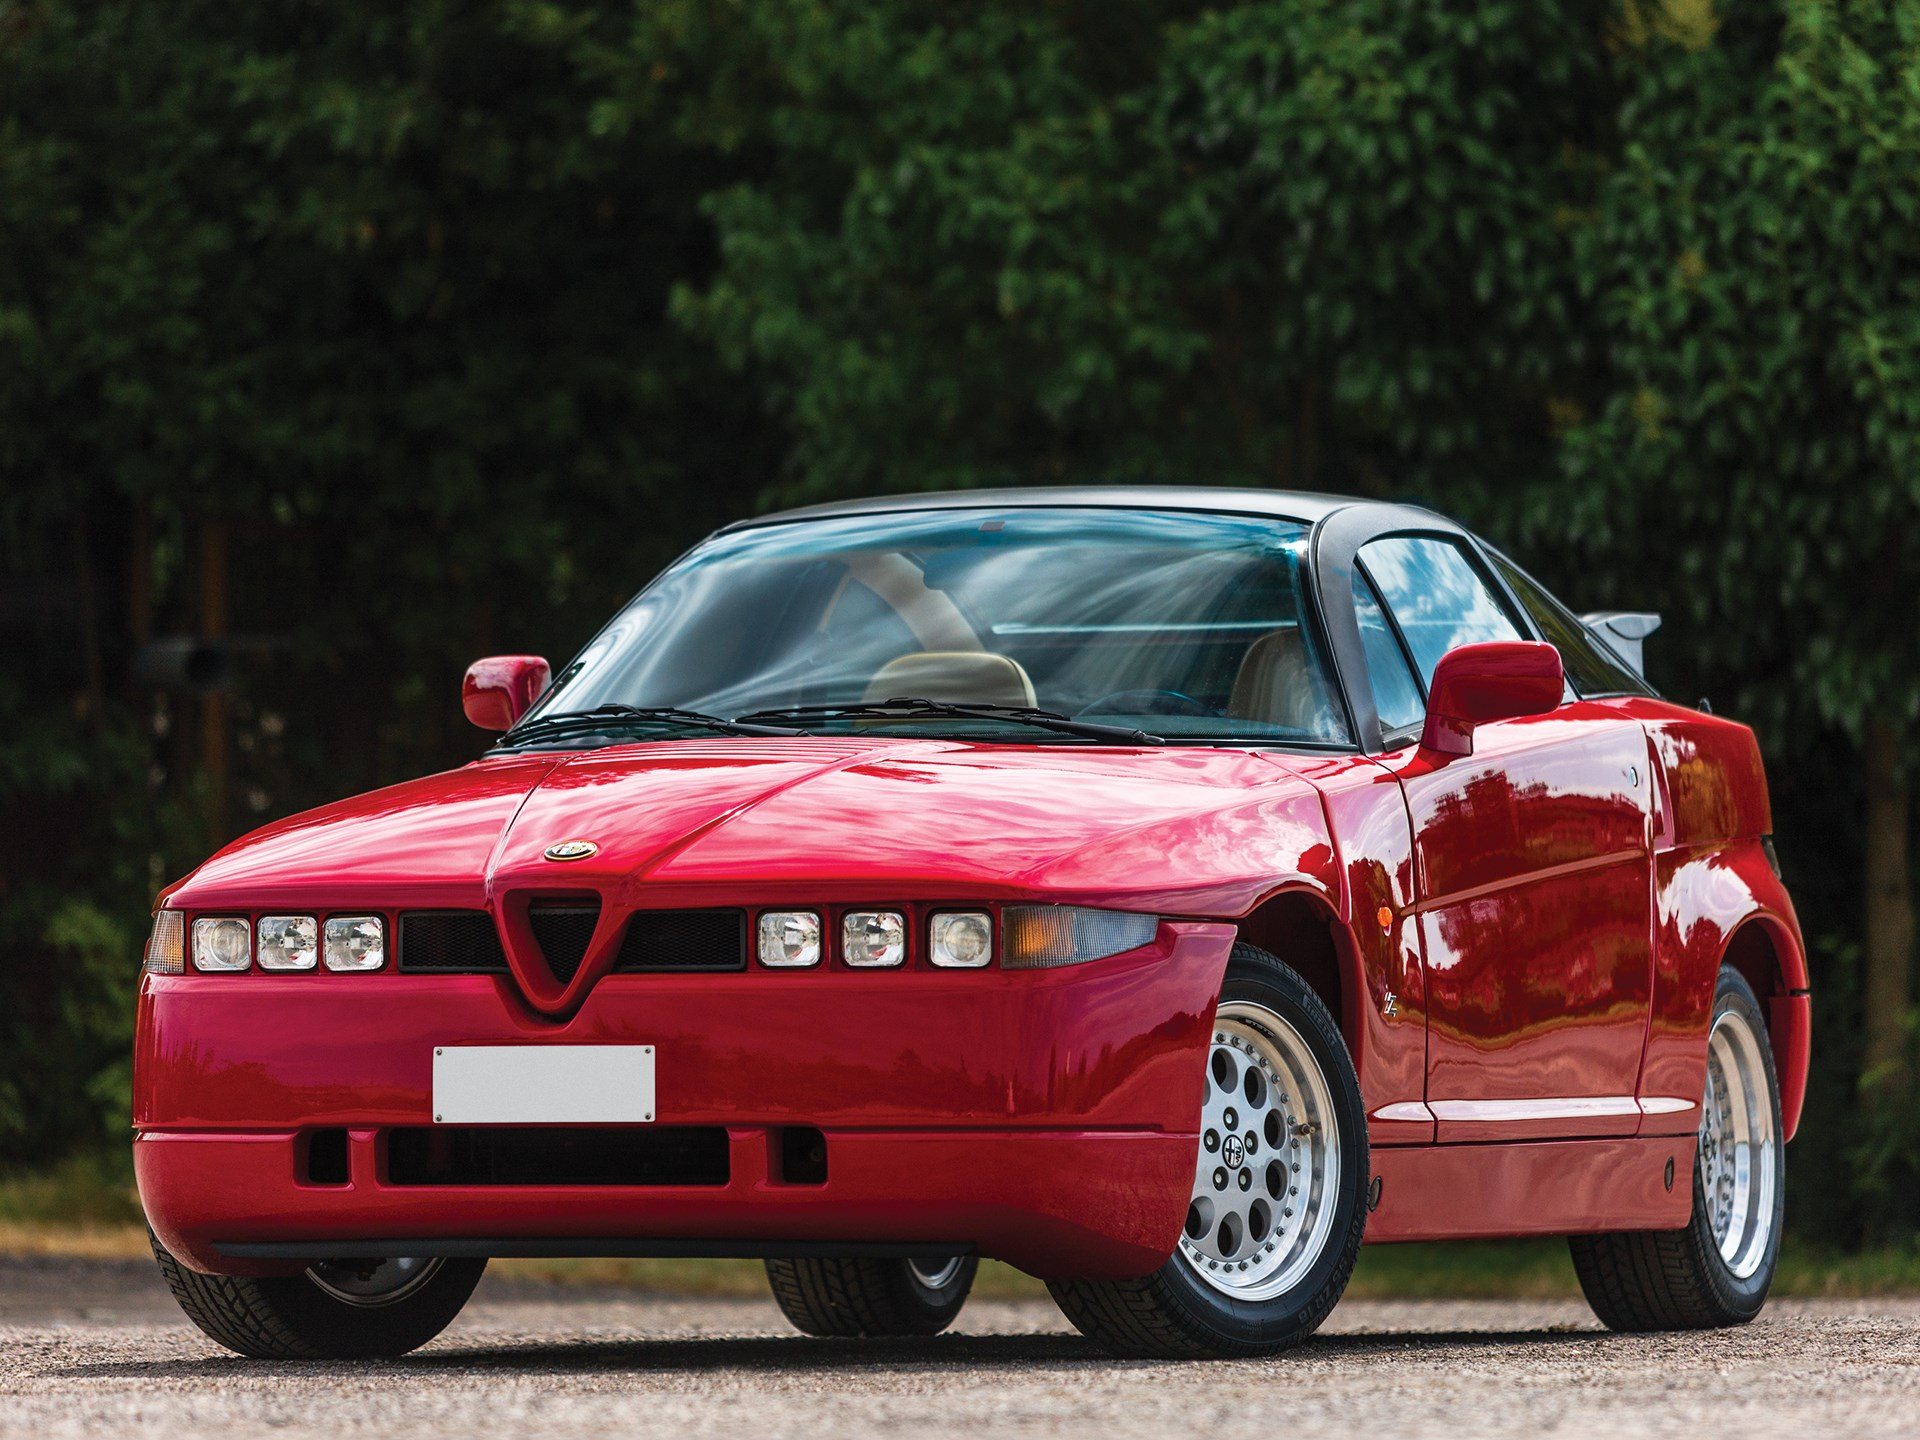 1990 Alfa Romeo SZ red 3/4 front low